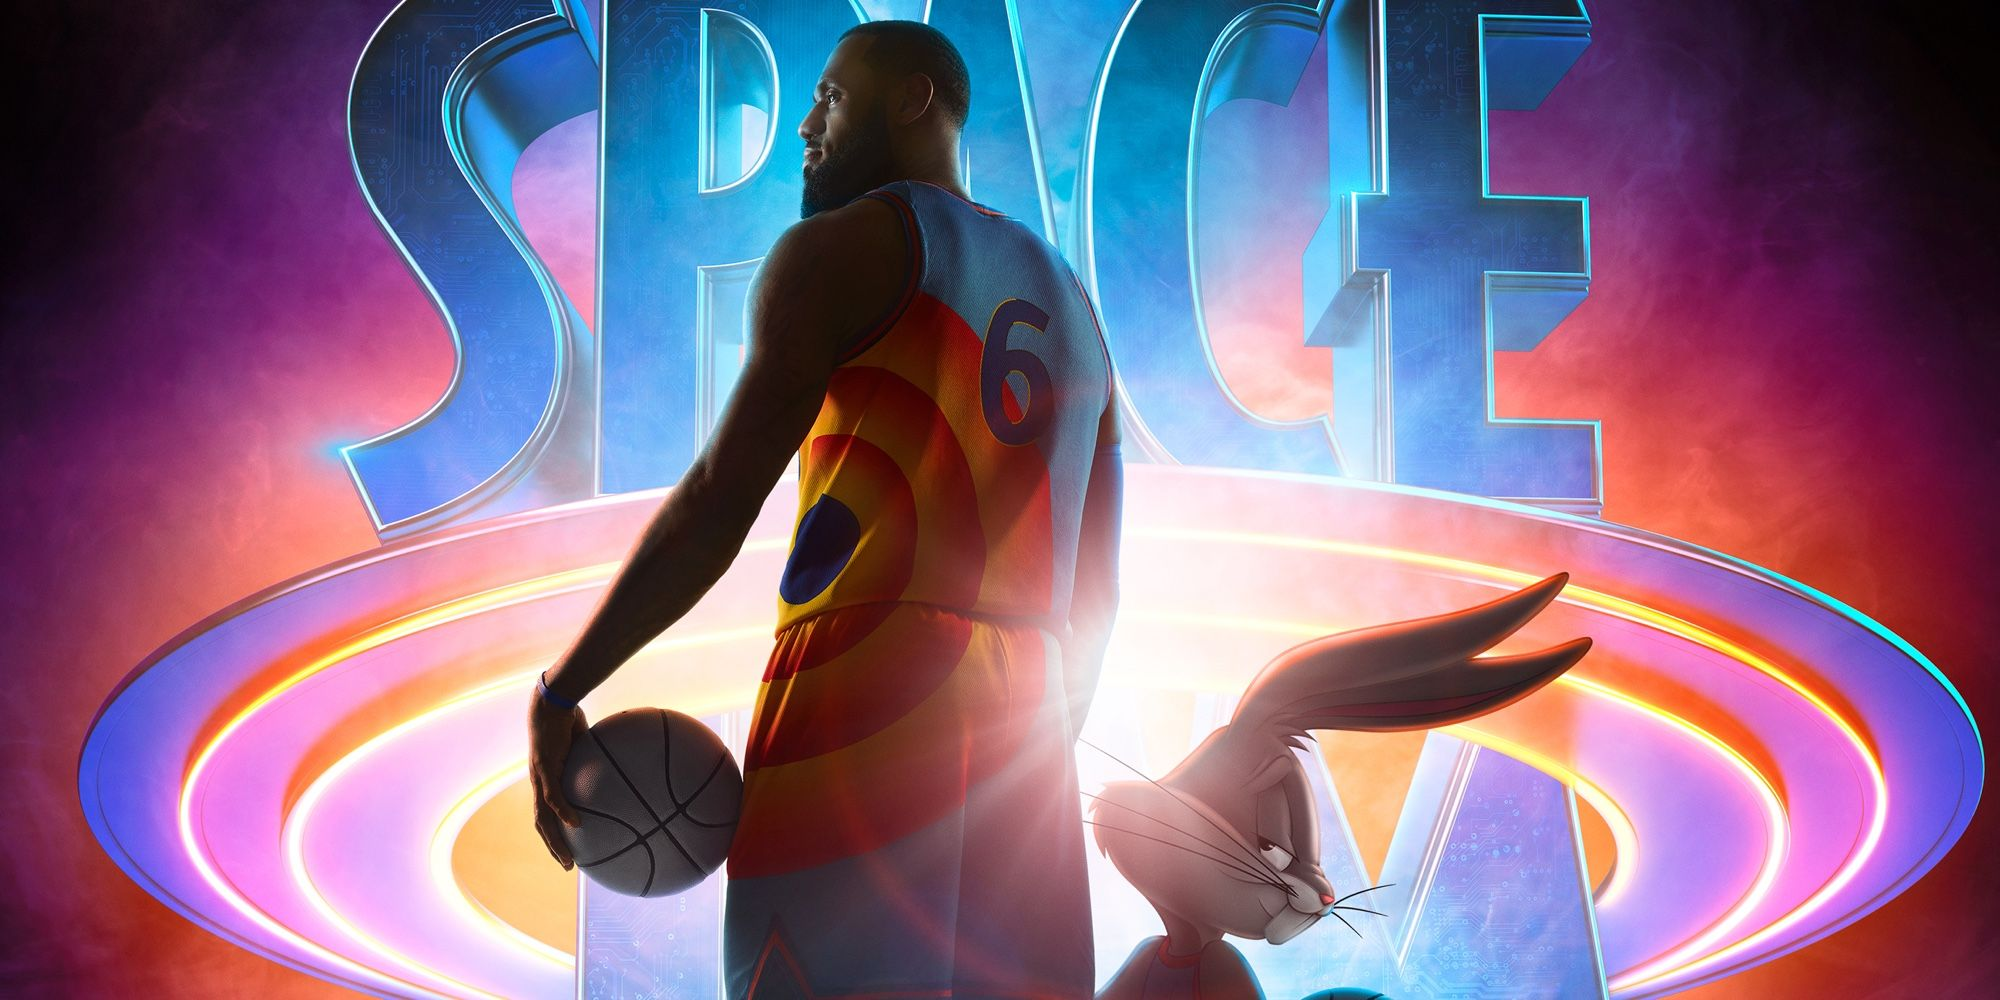 Space Jam 2 Poster Teases LeBron James' Toon Team Up With Bugs Bunny - Informone